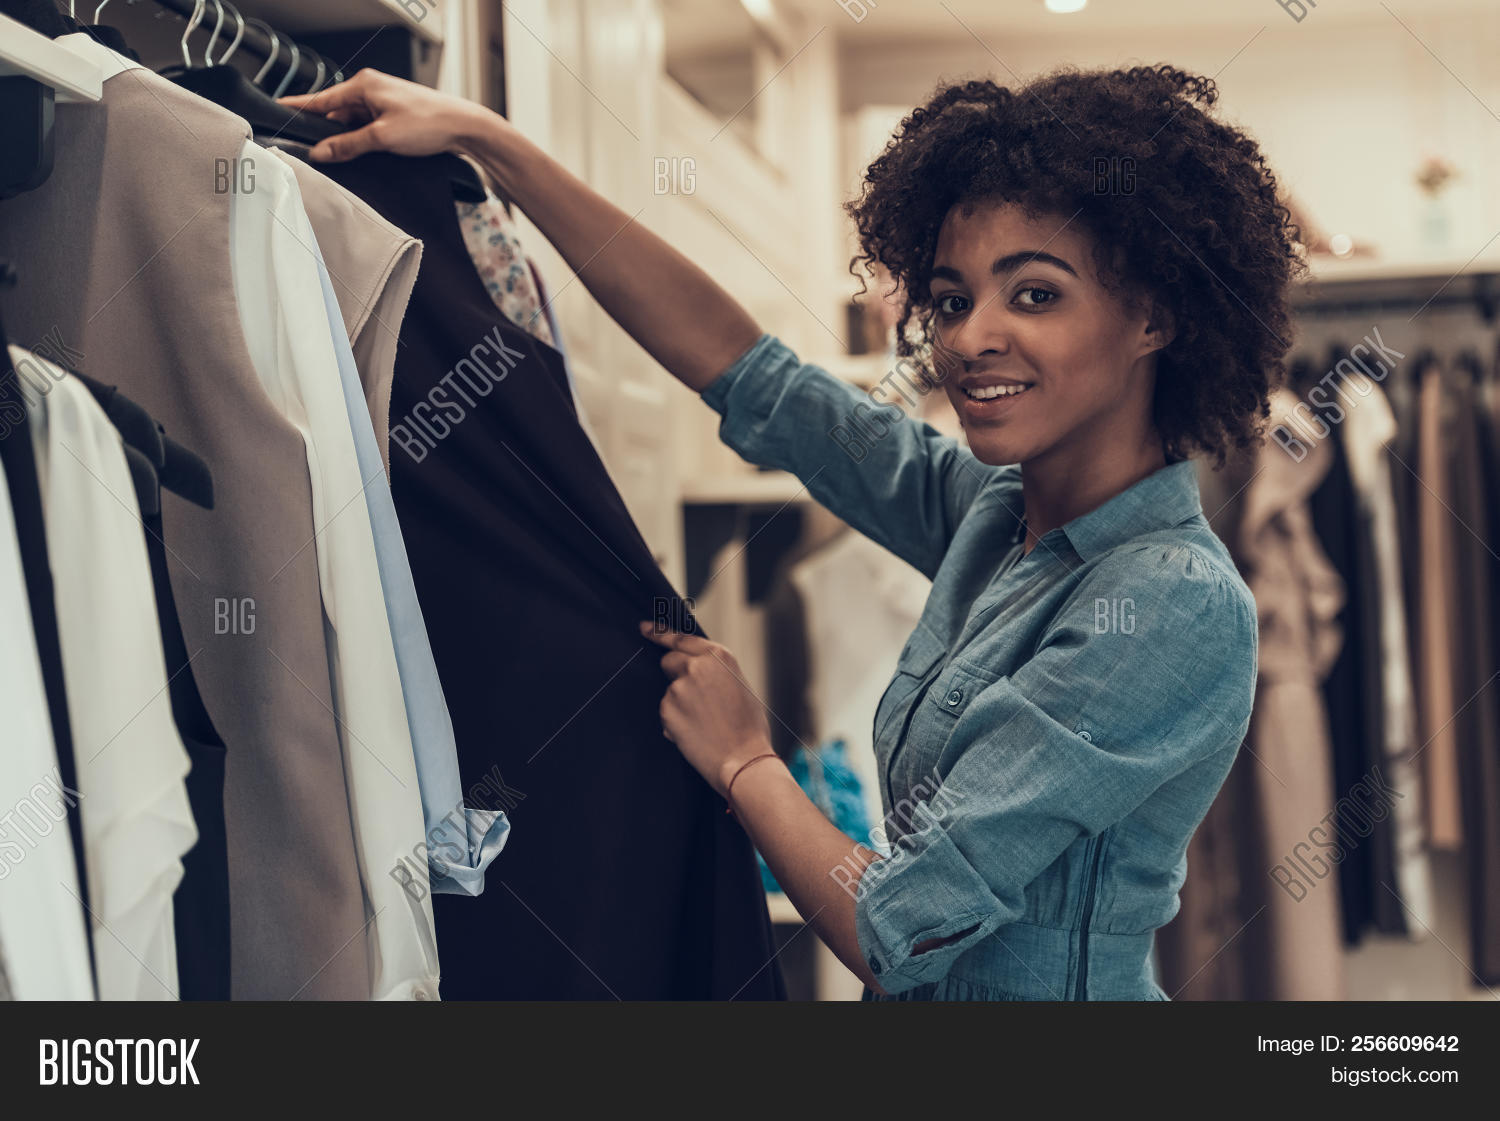 07fcff251e Smiling Young Woman Shopping in Clothing Store. Happy Beautiful Black Girl  choosing Clothes to Buy in Boutique inside Mall. Attractive african Woman  with ...